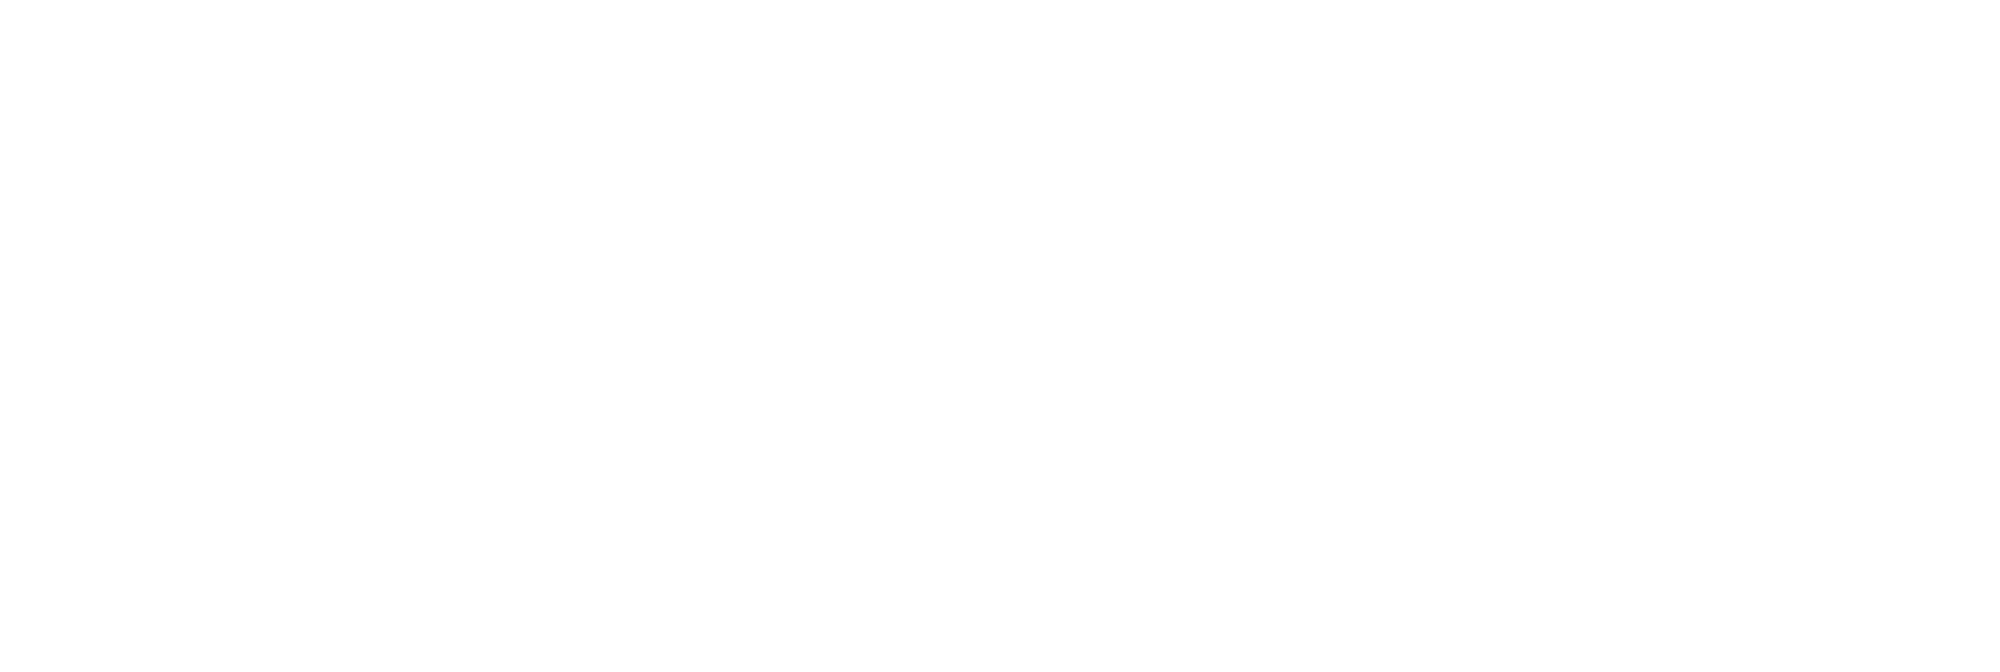 SpaceOne Interior Design Consultancy